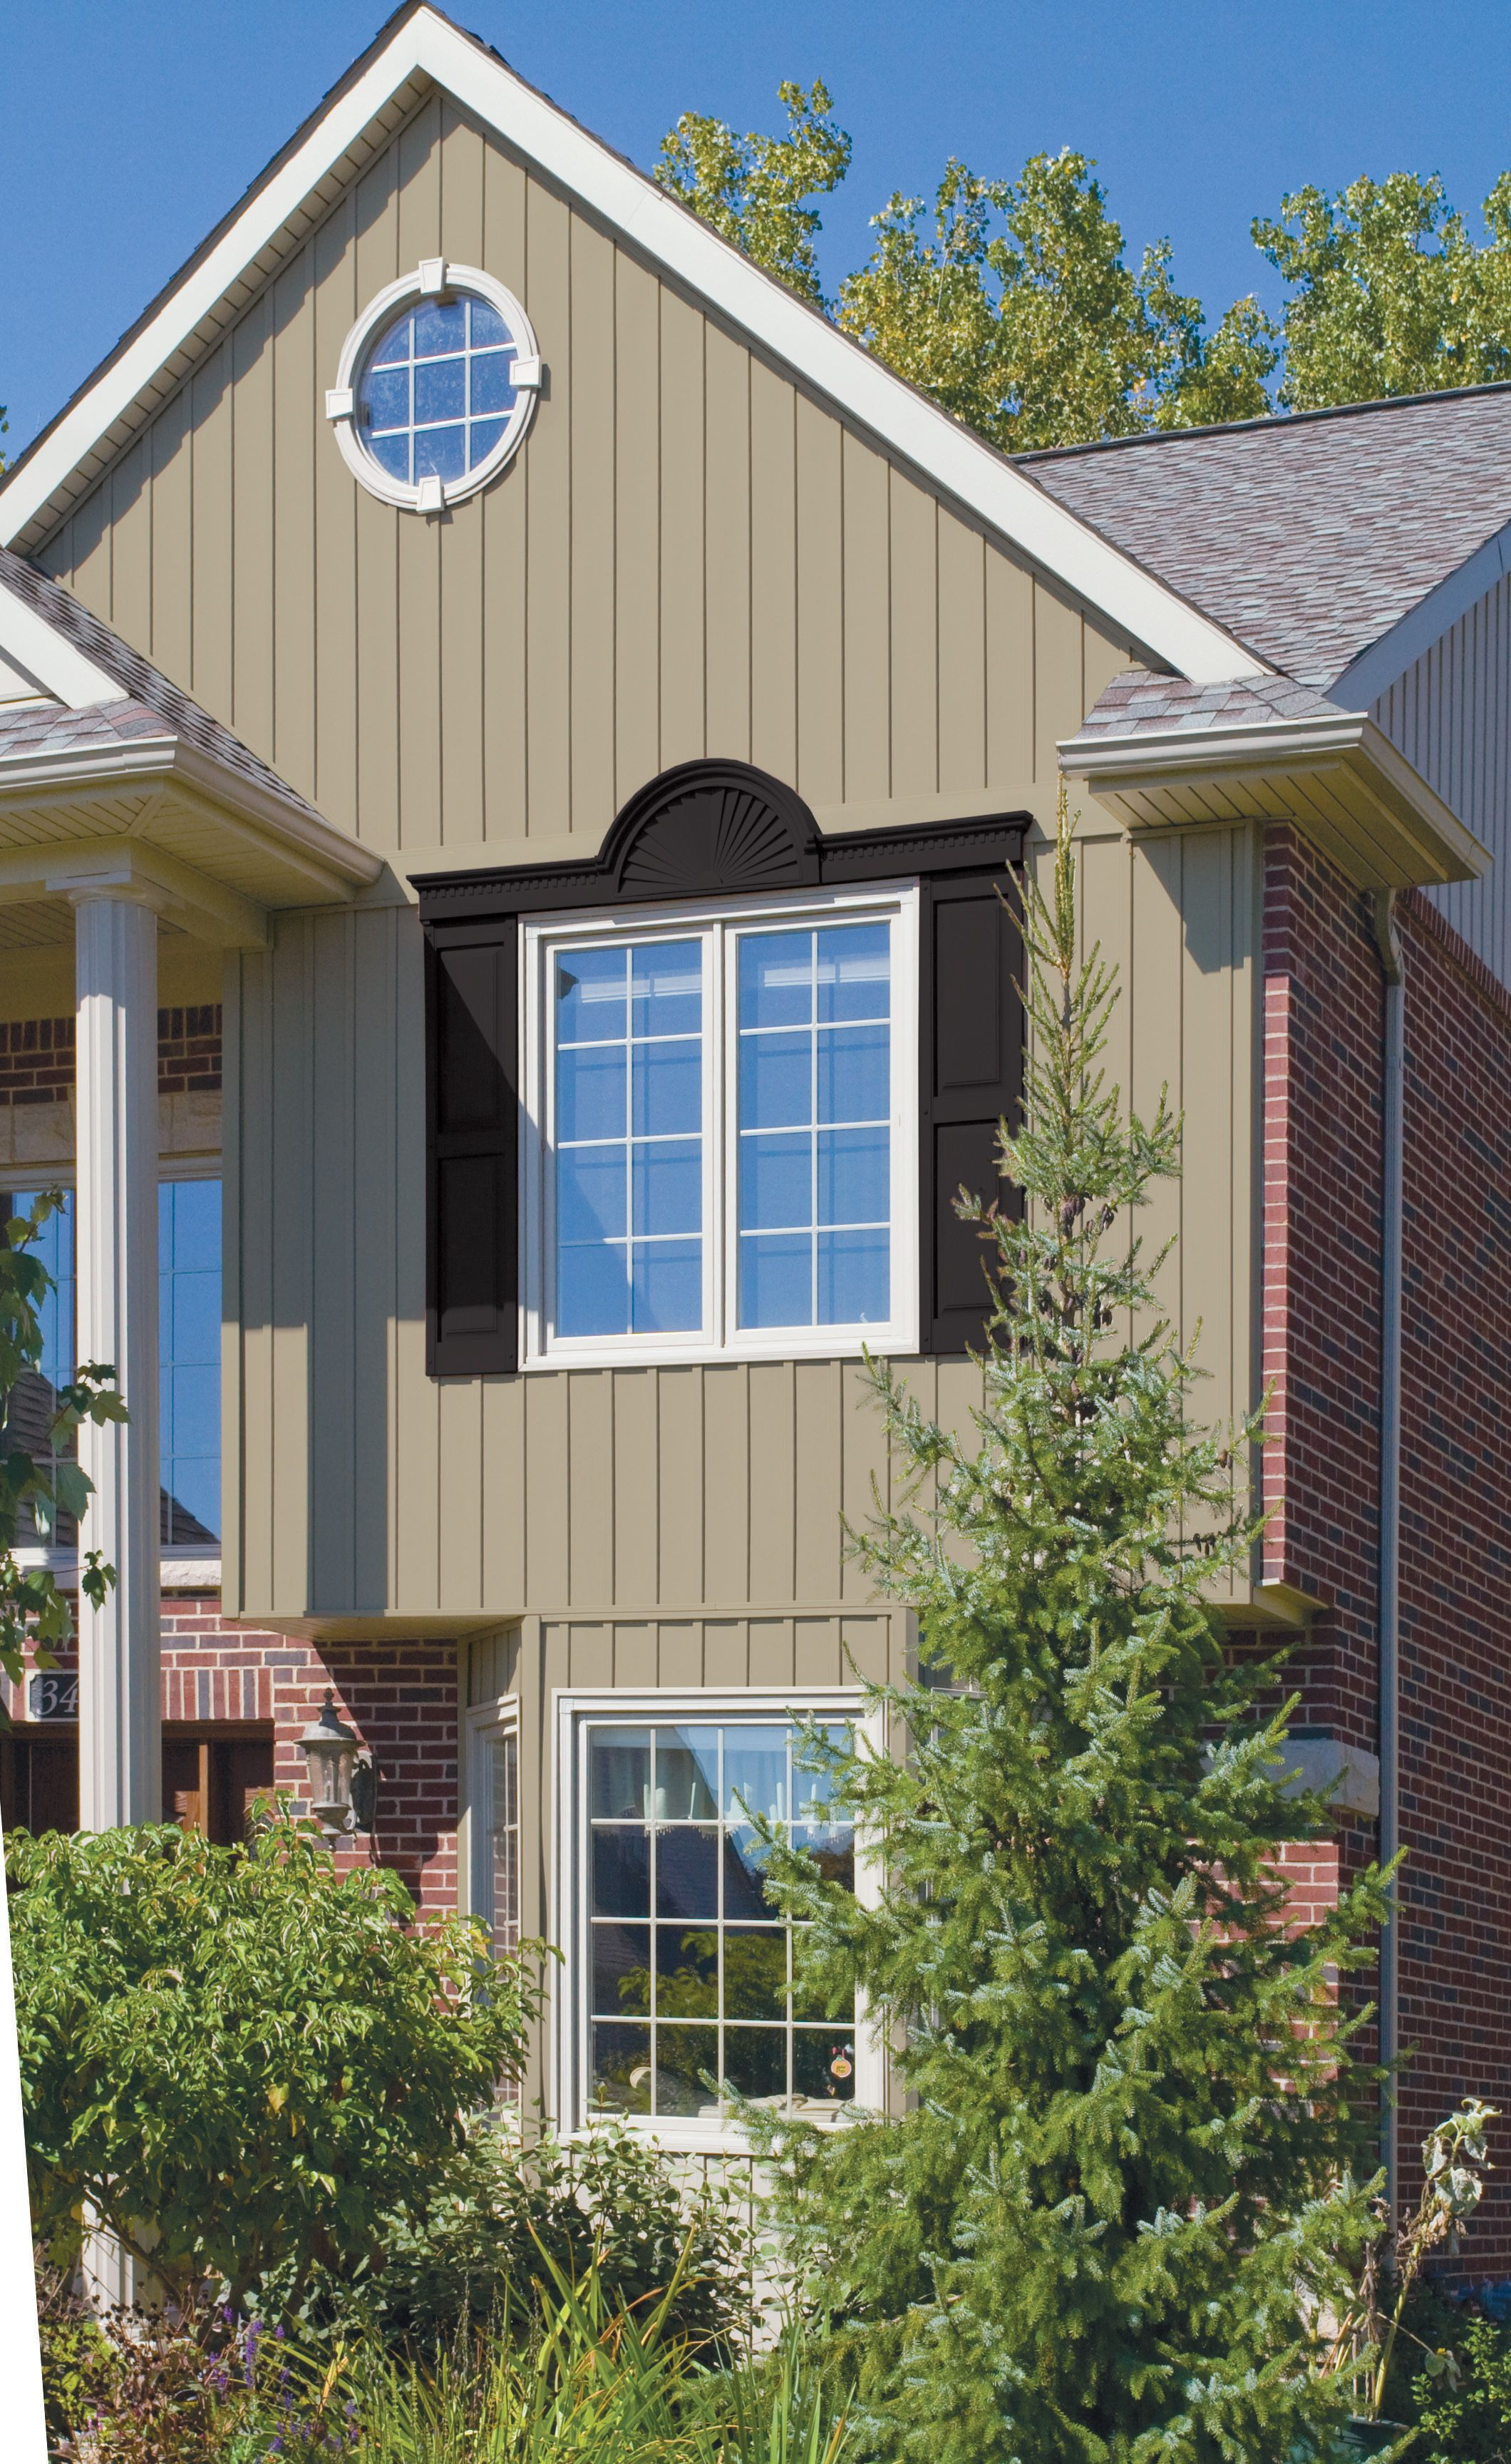 Timbercrest Board And Batten Vinyl Siding At Menards Contemporary House Design House Design Contemporary House